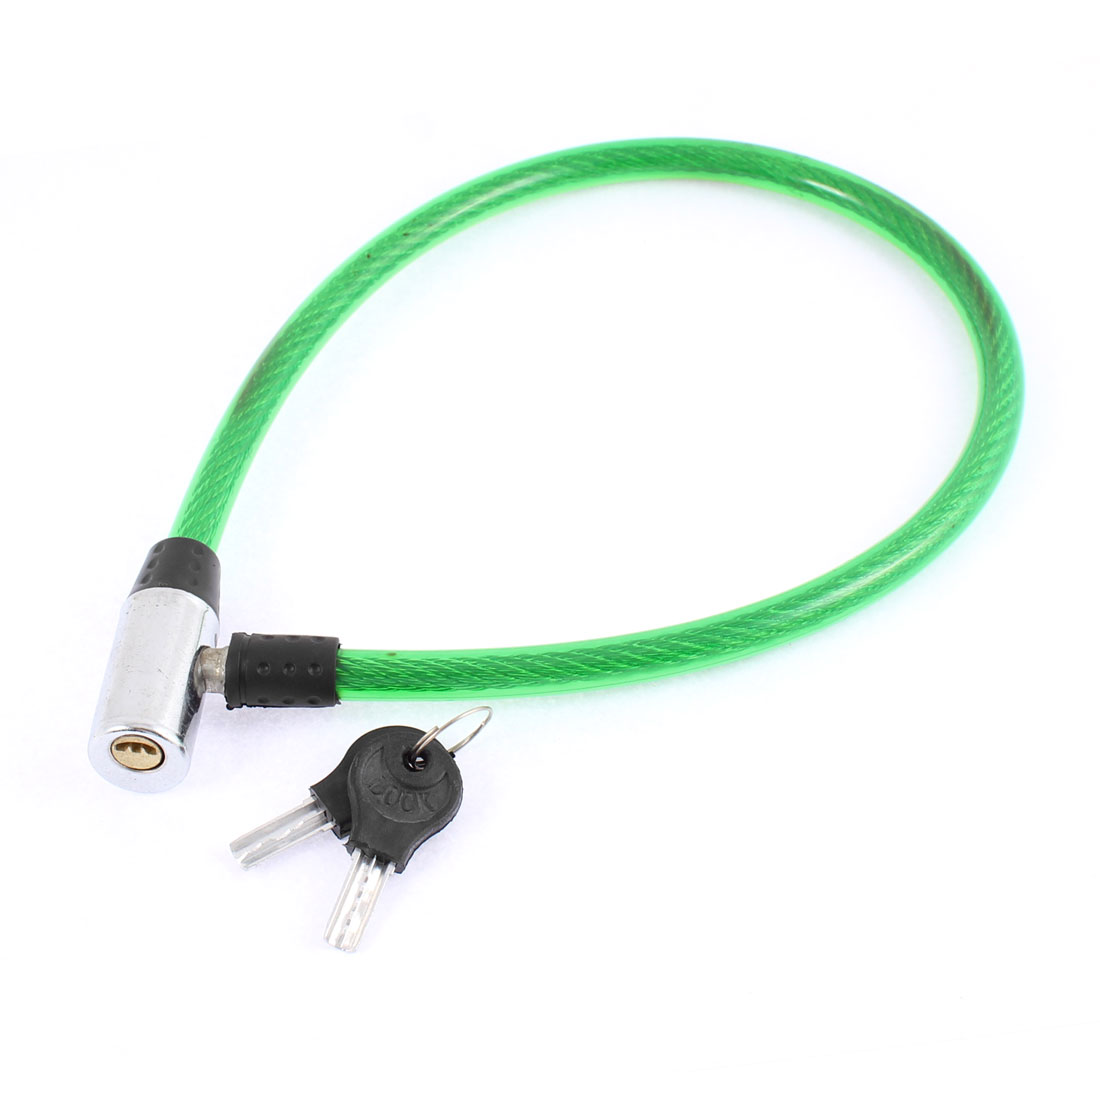 "Bike Bicycle Motorcycle Plastic Coated Security Cable Lock 25"" Length Green"